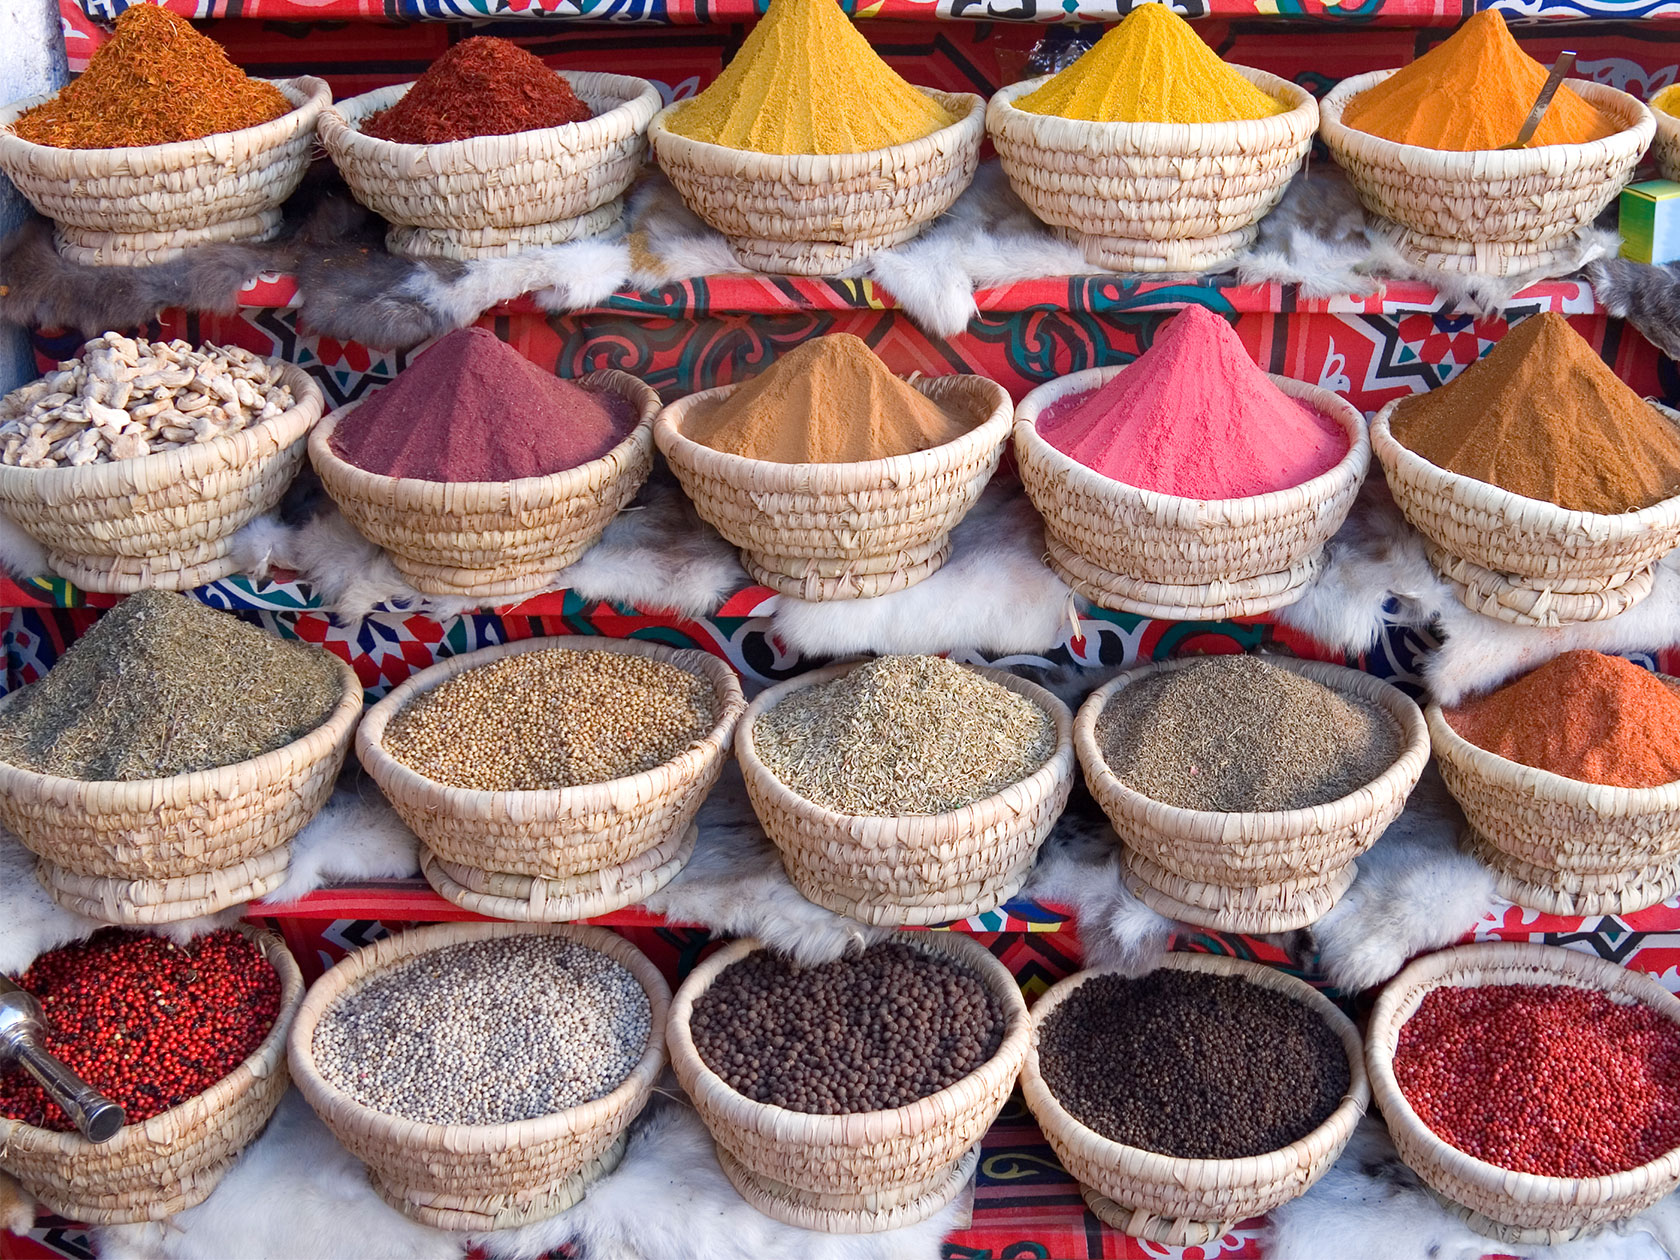 Colourful display of spices, Sharm el Sheik, Egypt.